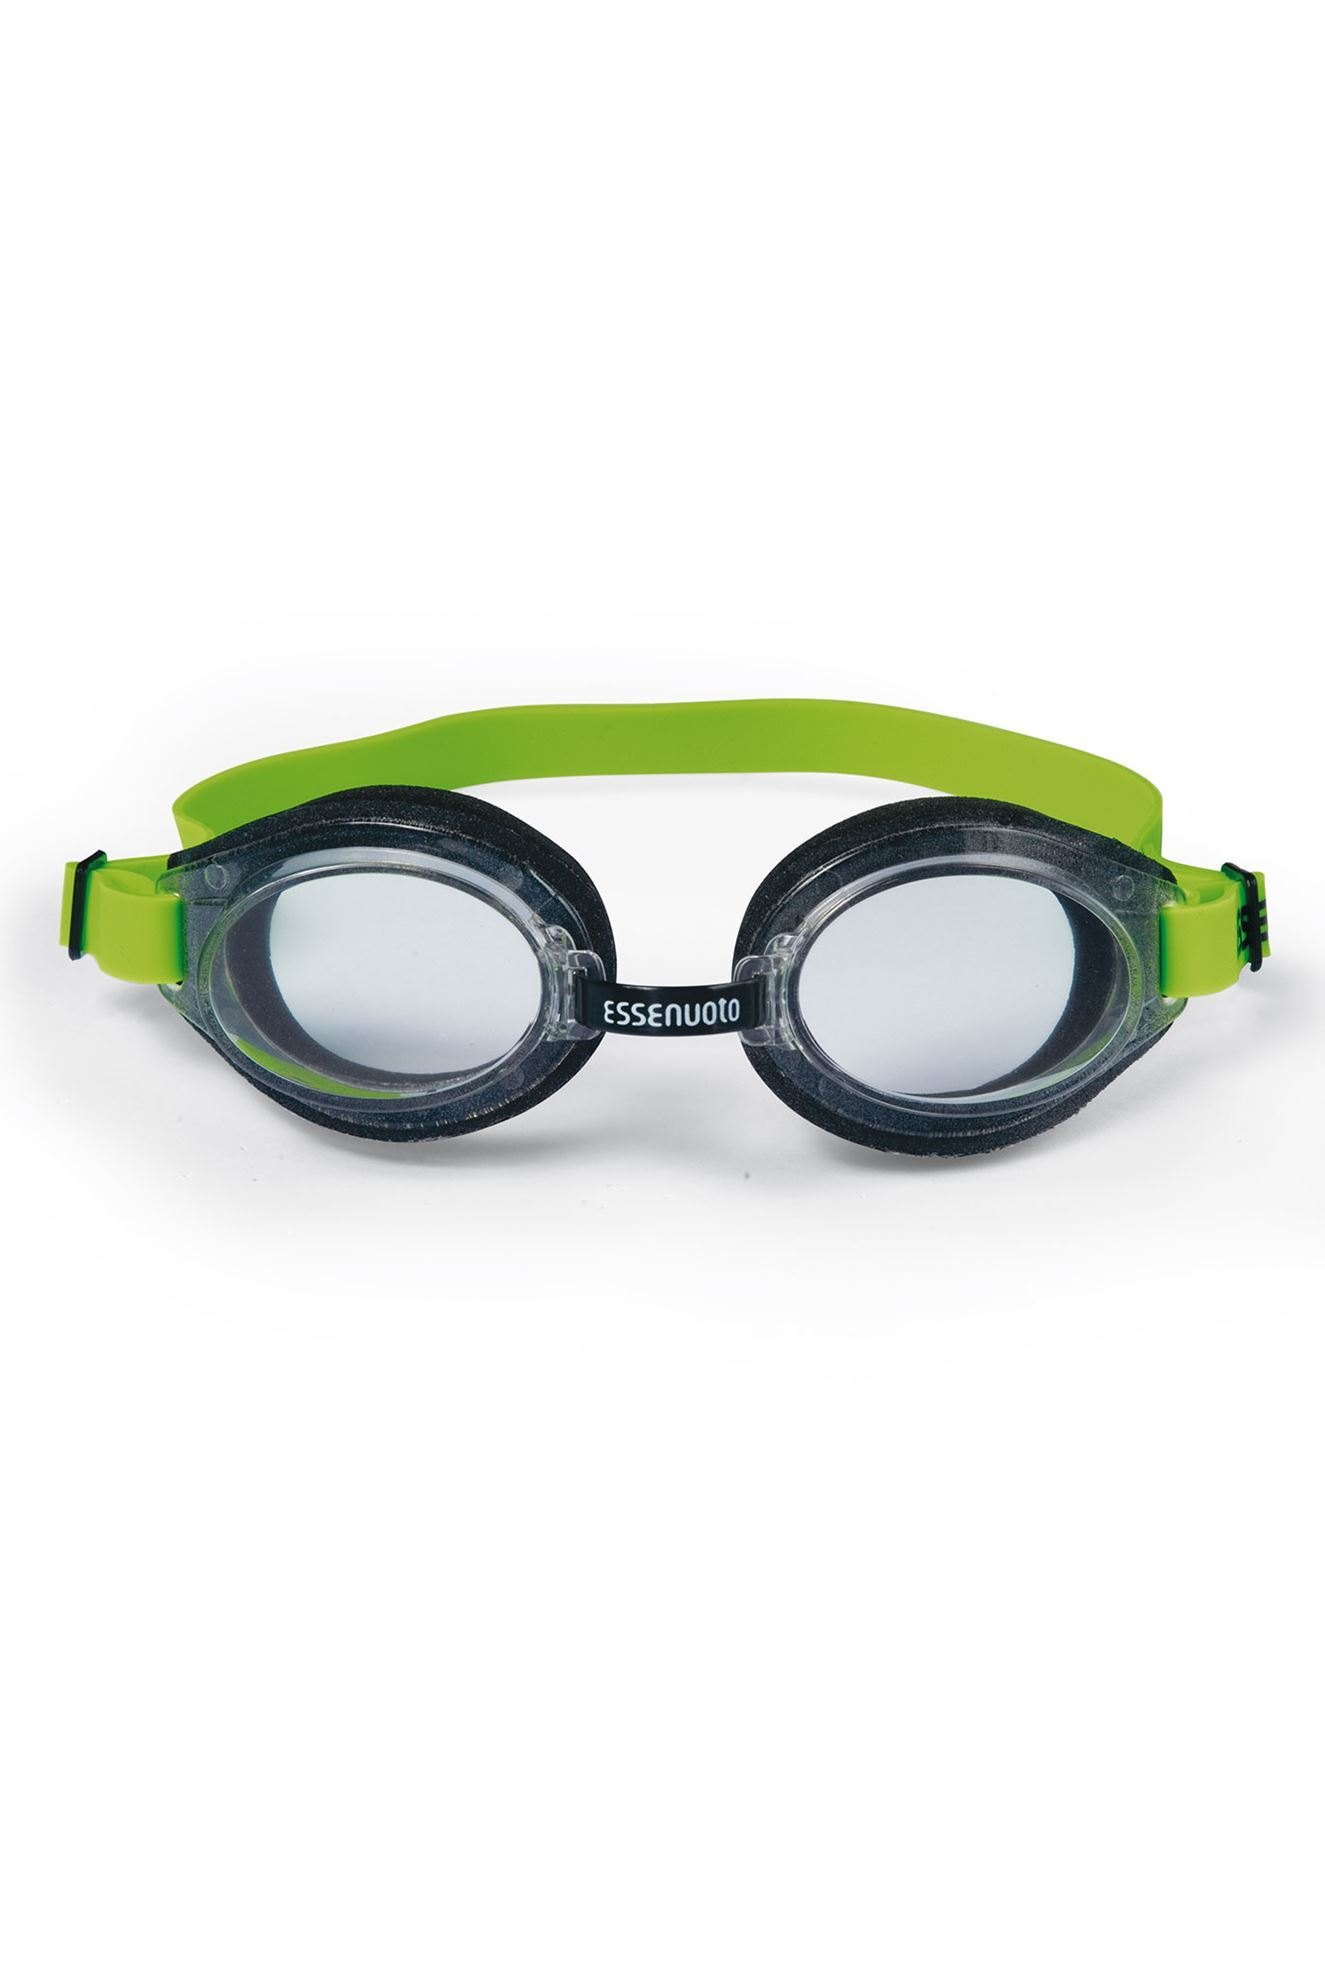 203000 - GOGGLES RAPIDS GREEN-CLEAR